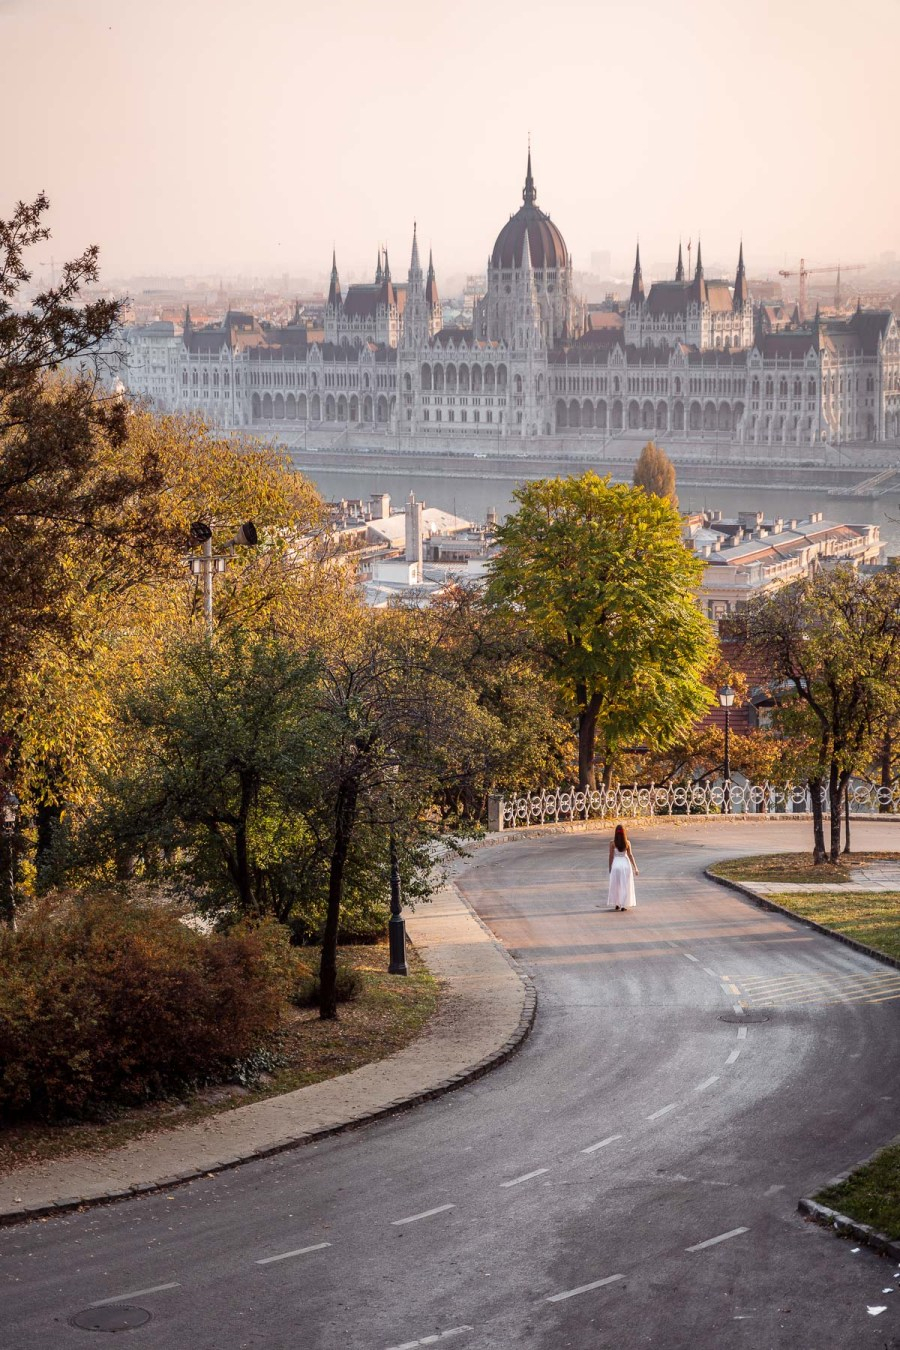 View of the Hungarian Parliament from the Fisherman's Bastion in Budapest